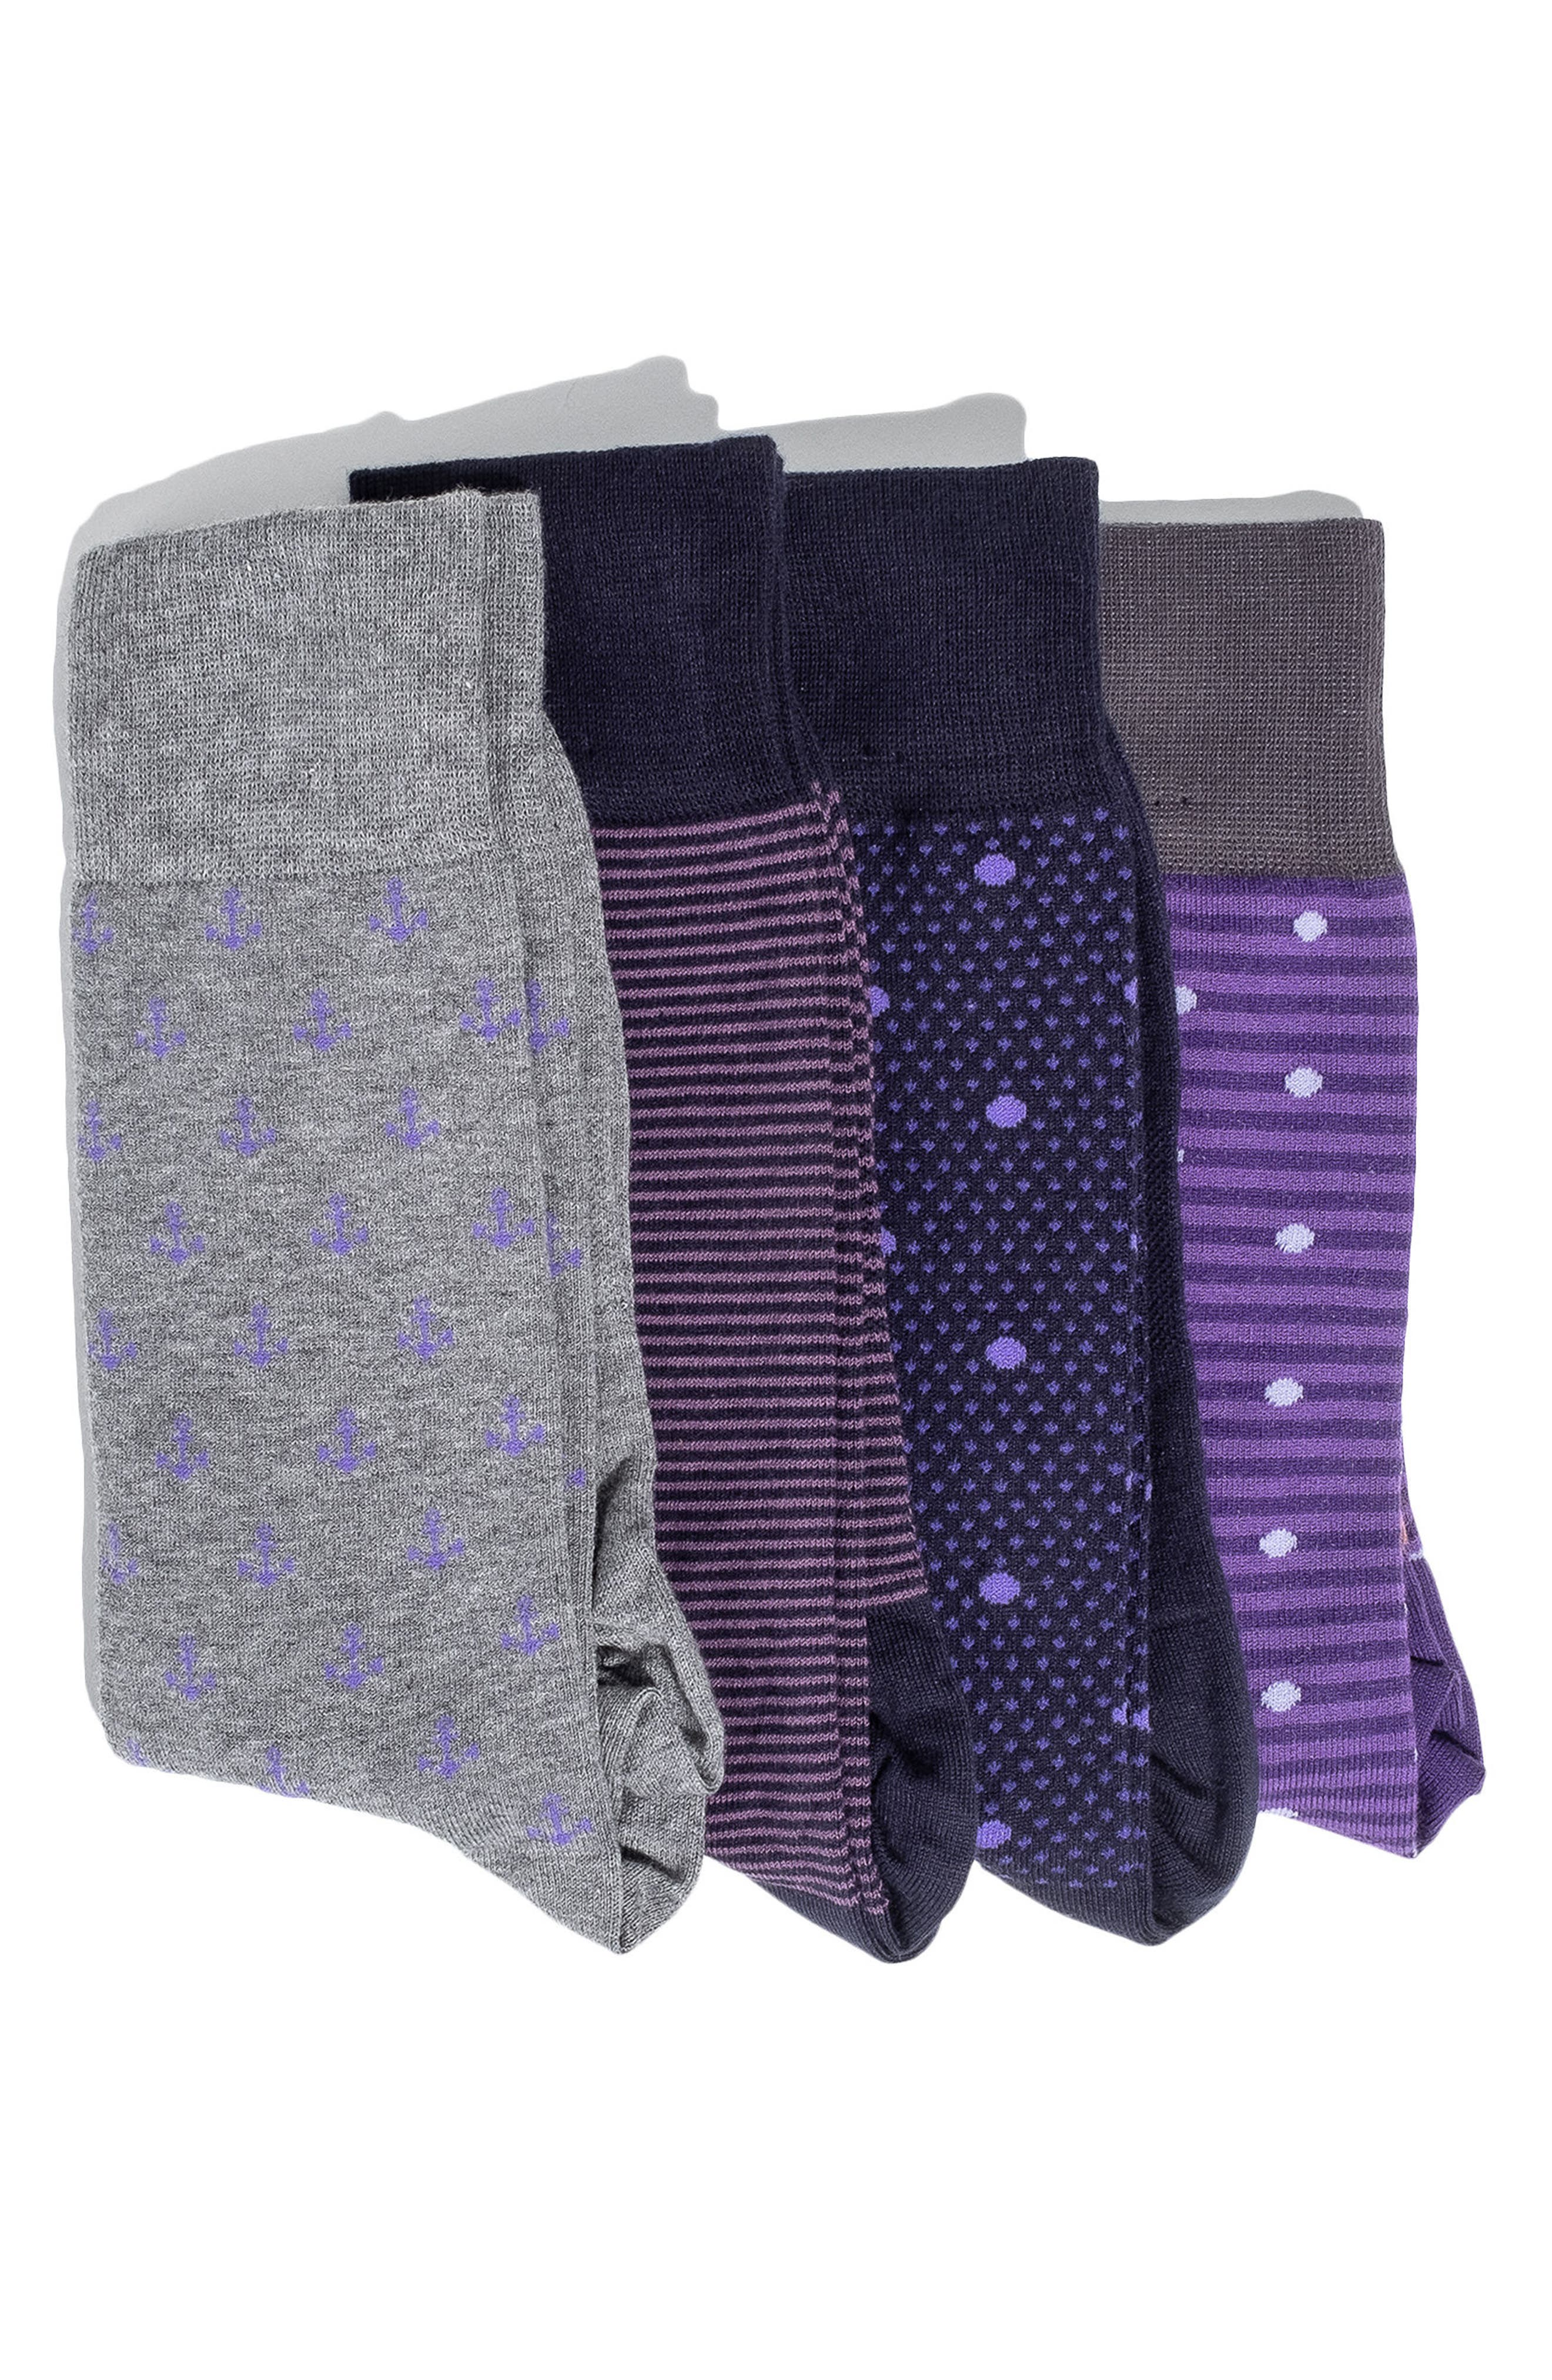 4-Pack Socks,                             Main thumbnail 1, color,                             Purple